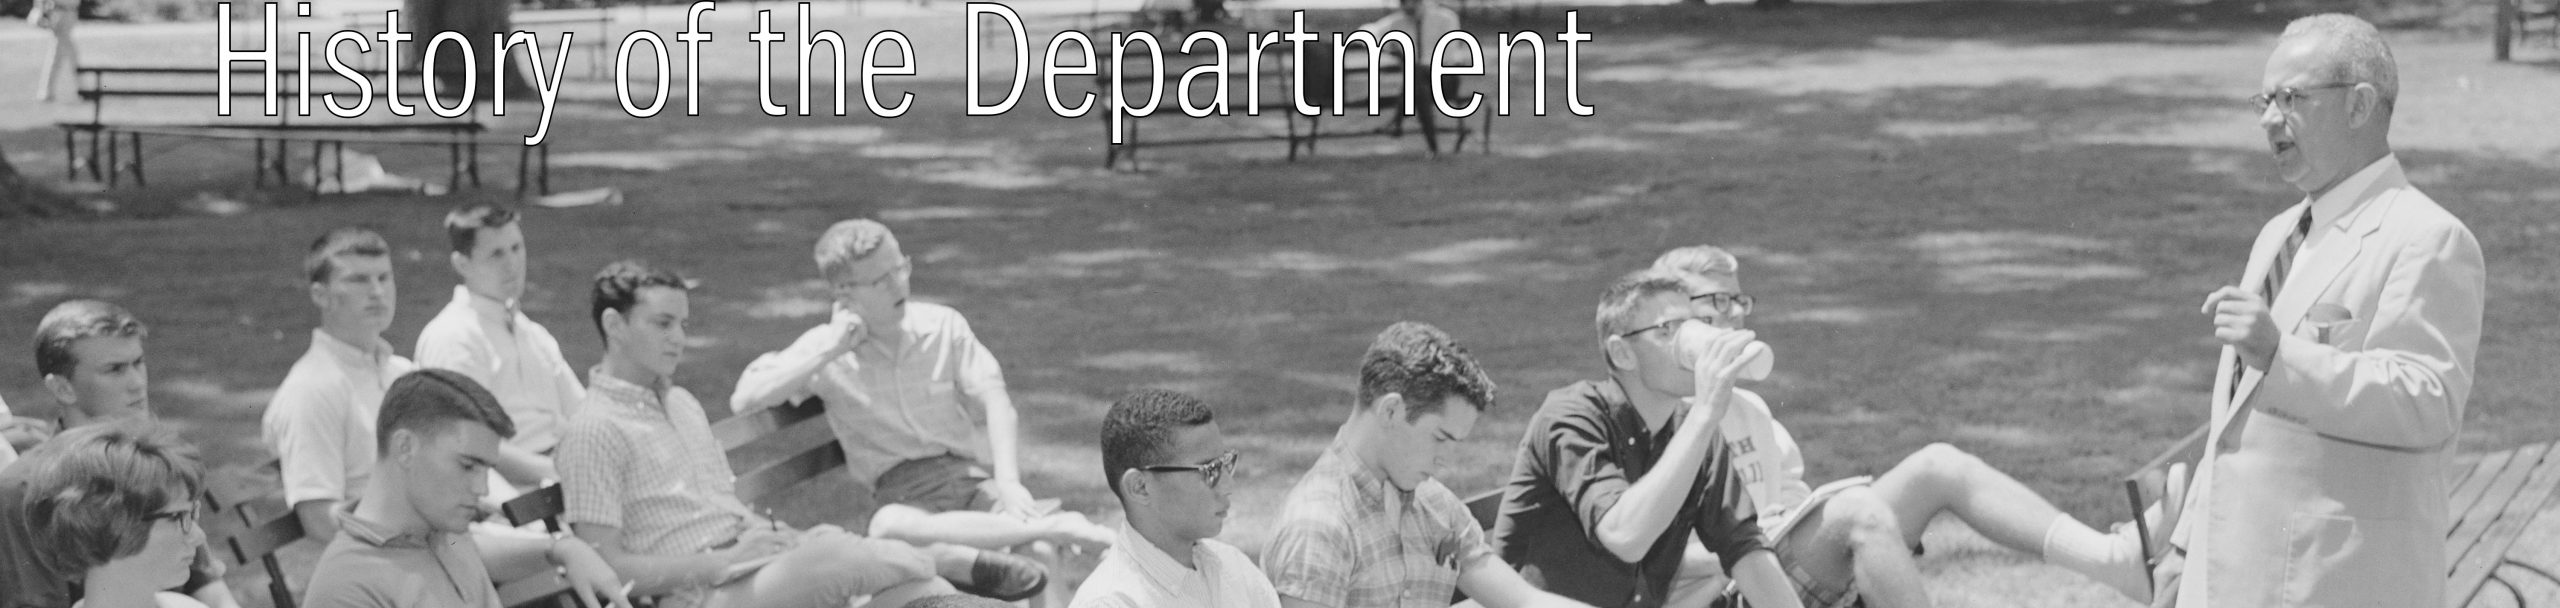 Caption - History of the Department. Black and white image of Bill Greer teaching class.